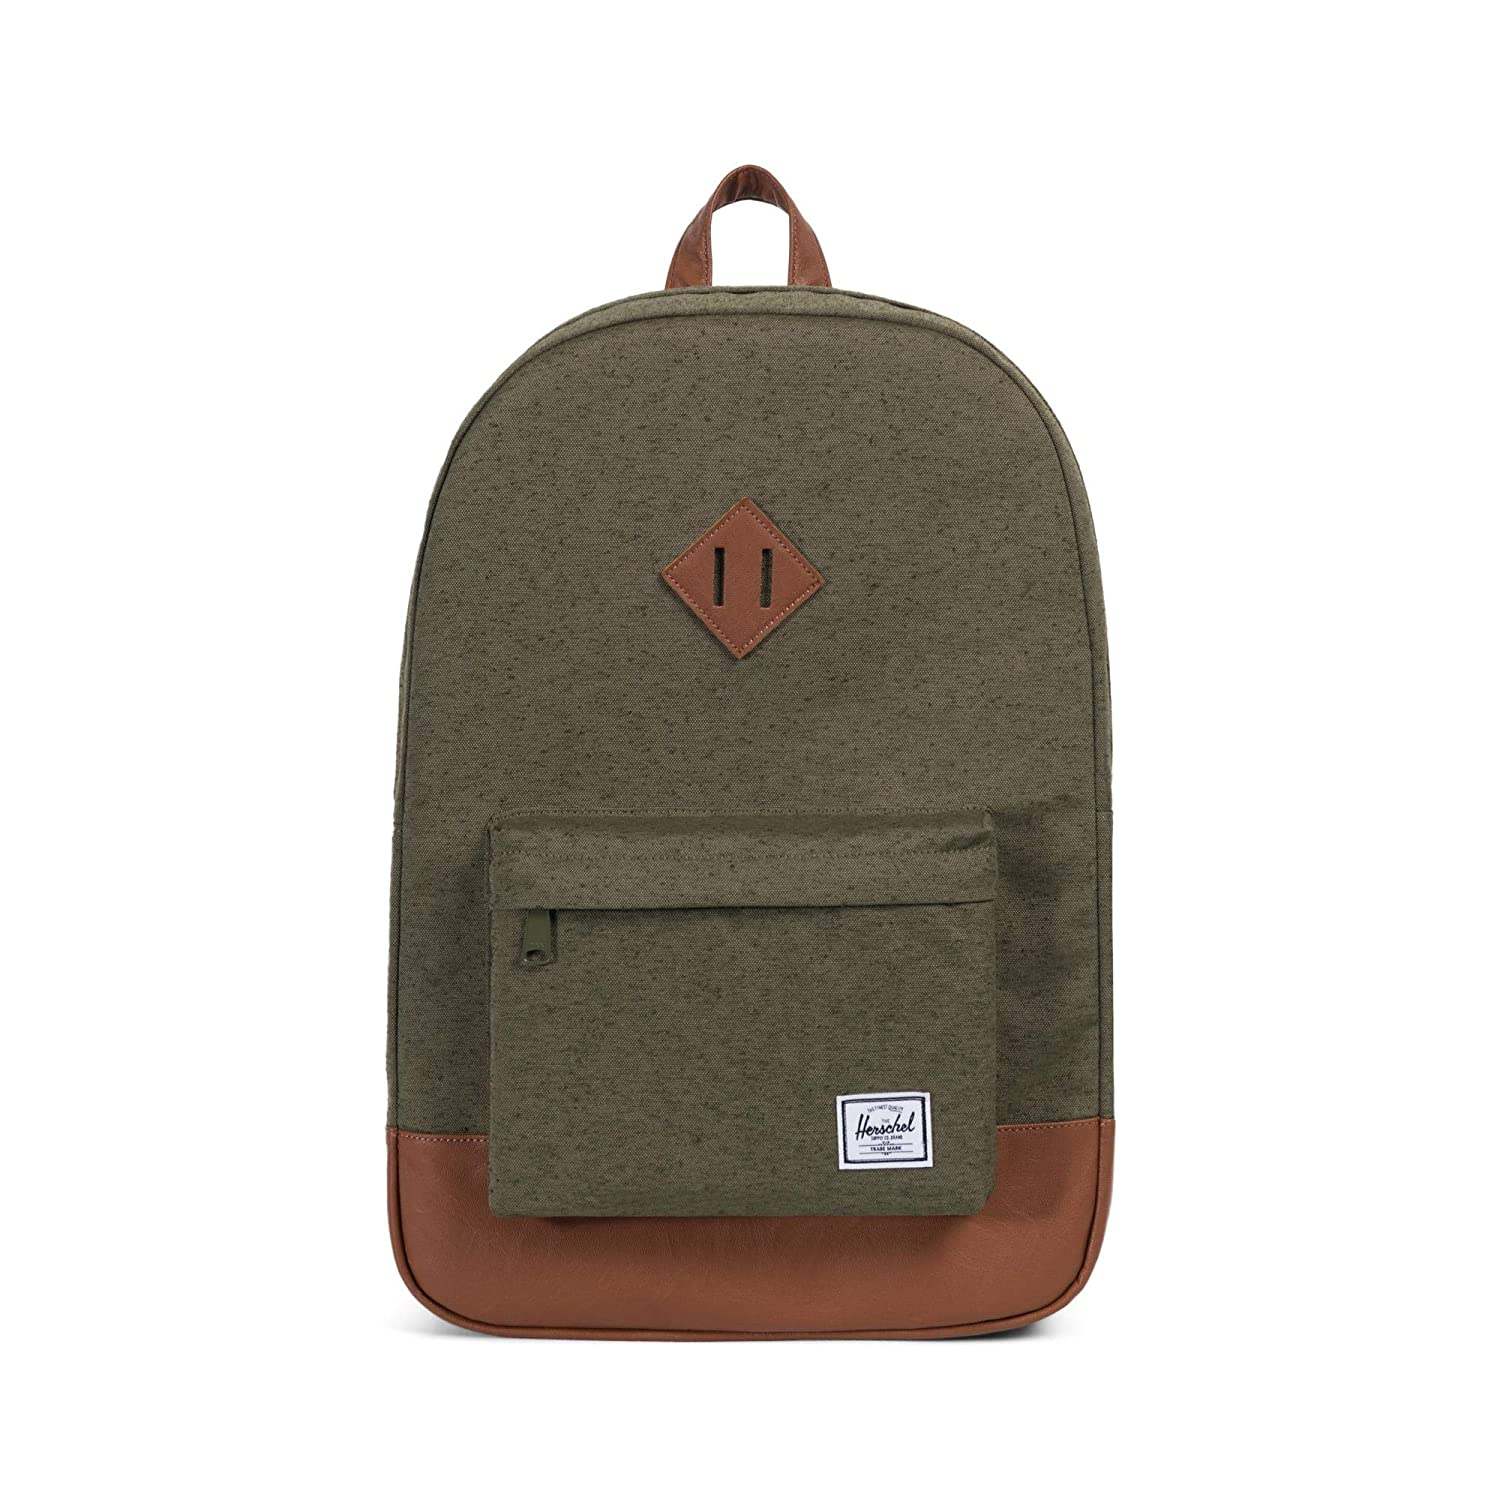 great variety styles famous designer brand high fashion Herschel Heritage Backpack Ivory Green Slub/Tan Synthetic Leather One Size